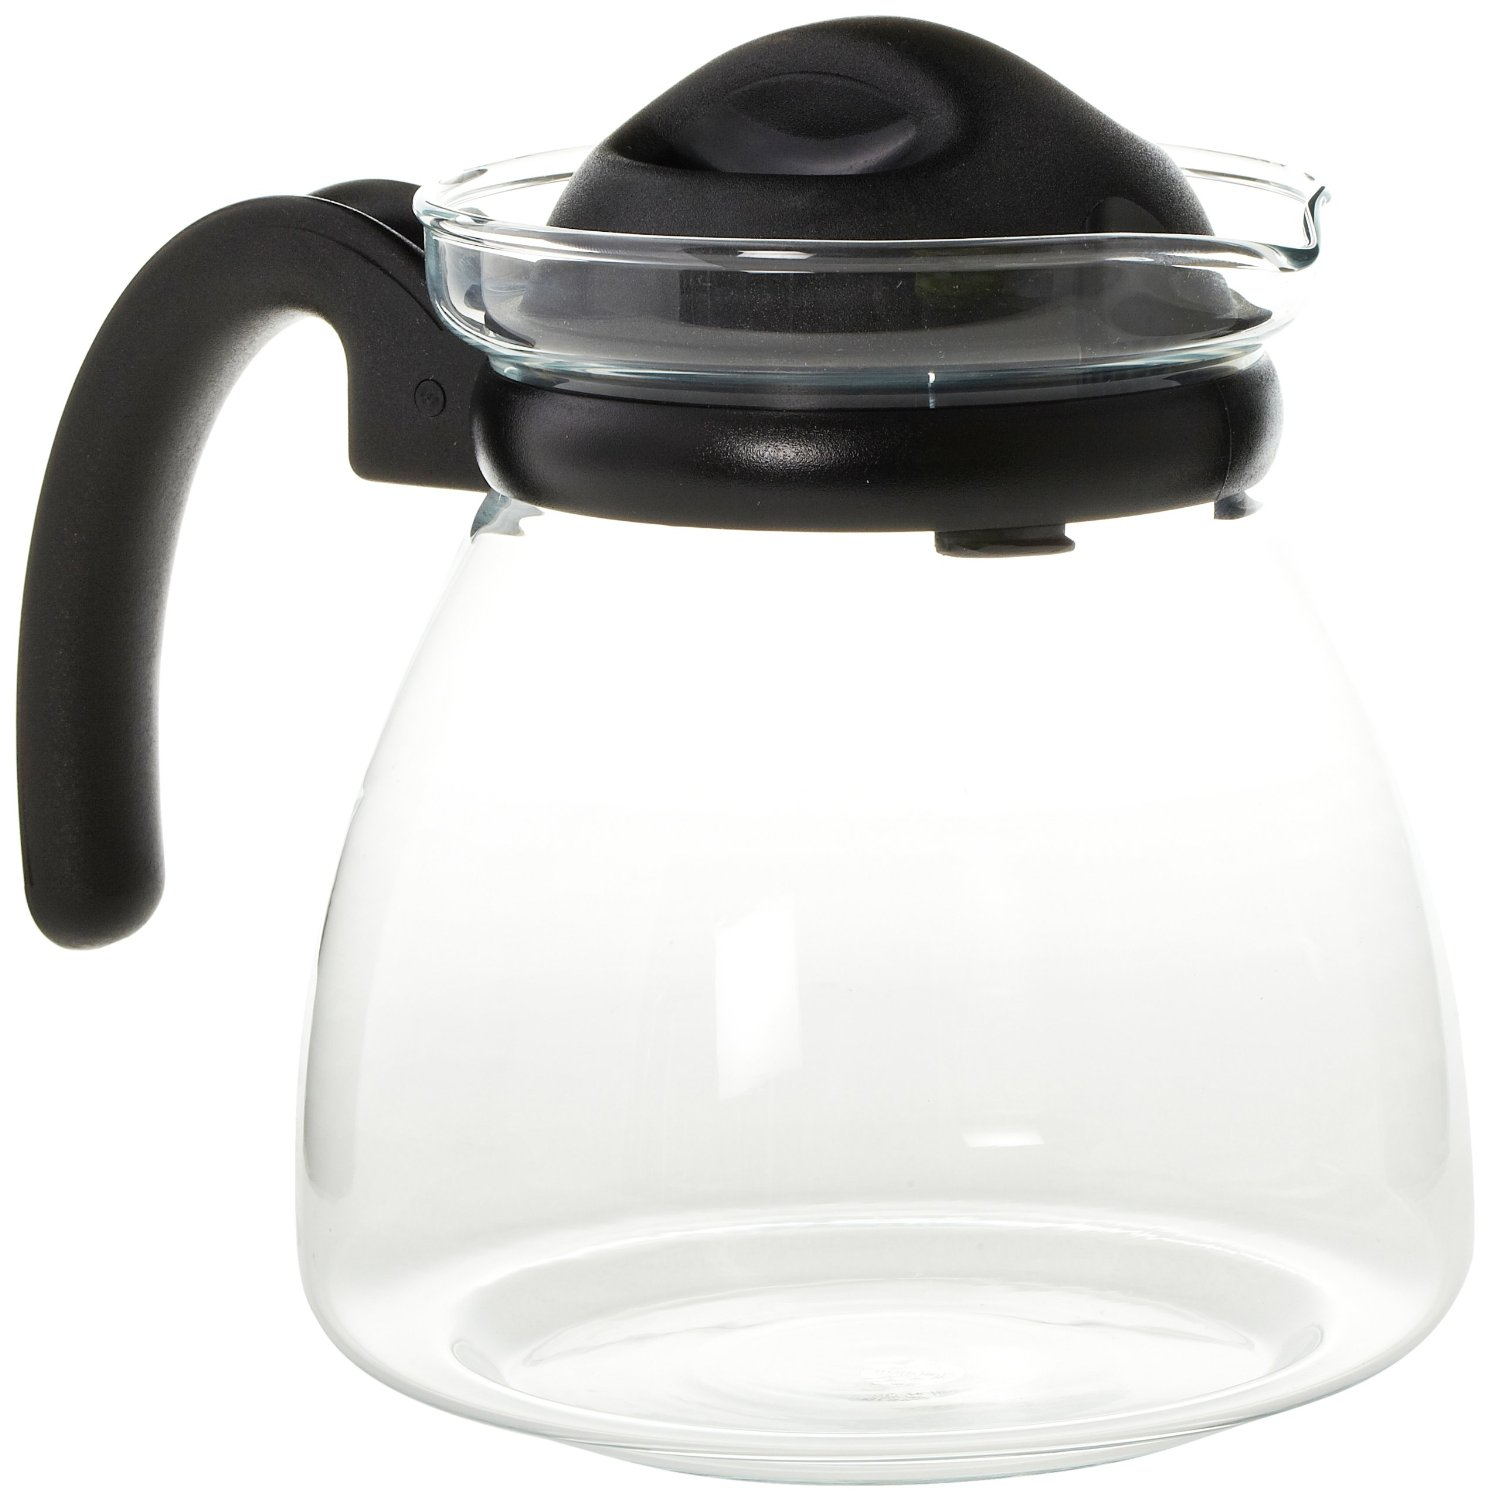 Borosil carafe pot with strainer in lid litres